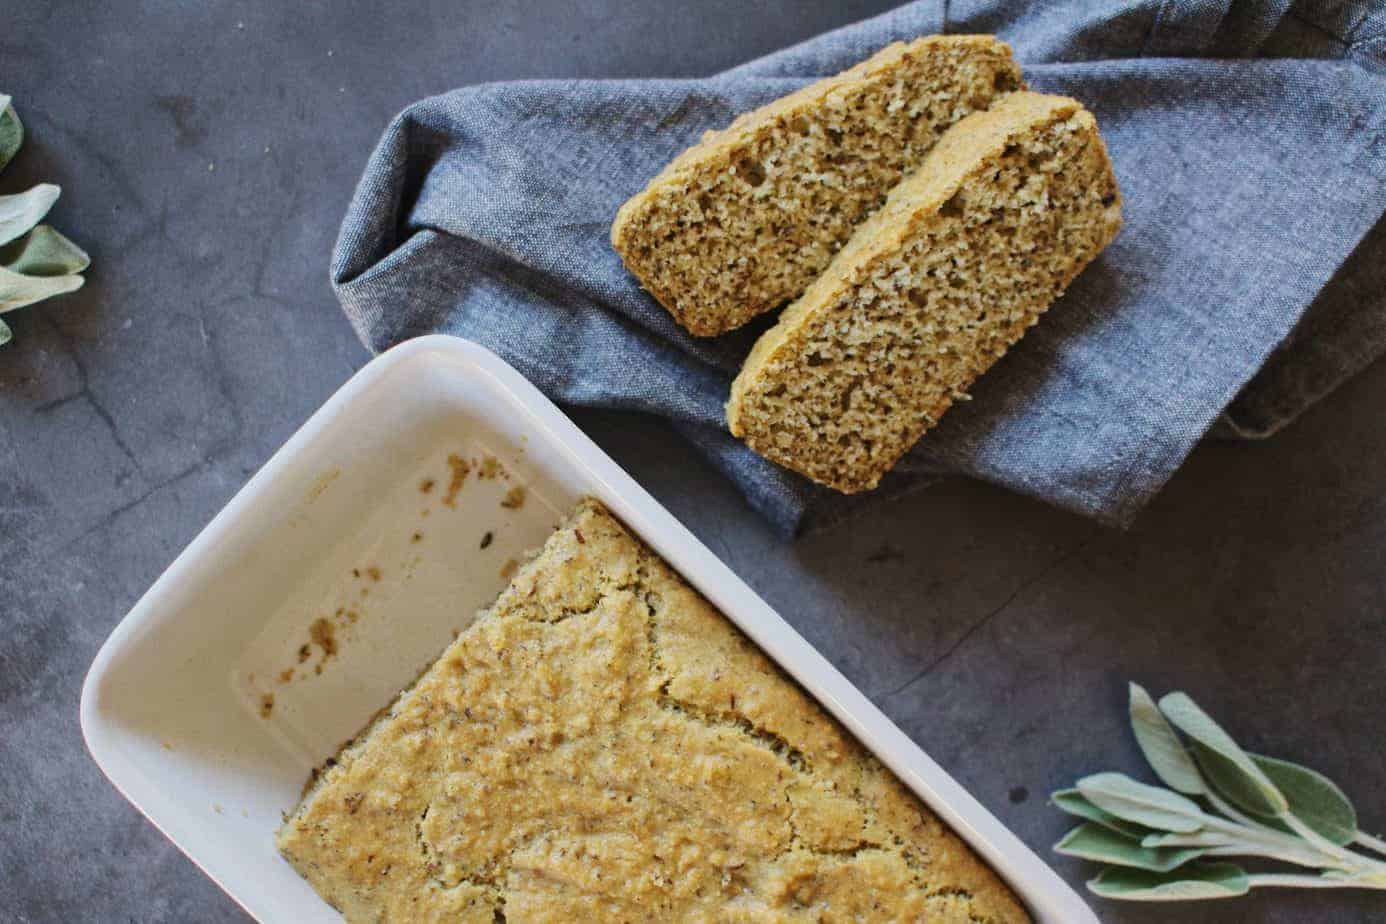 savory almond meal bread servings with whole loaf